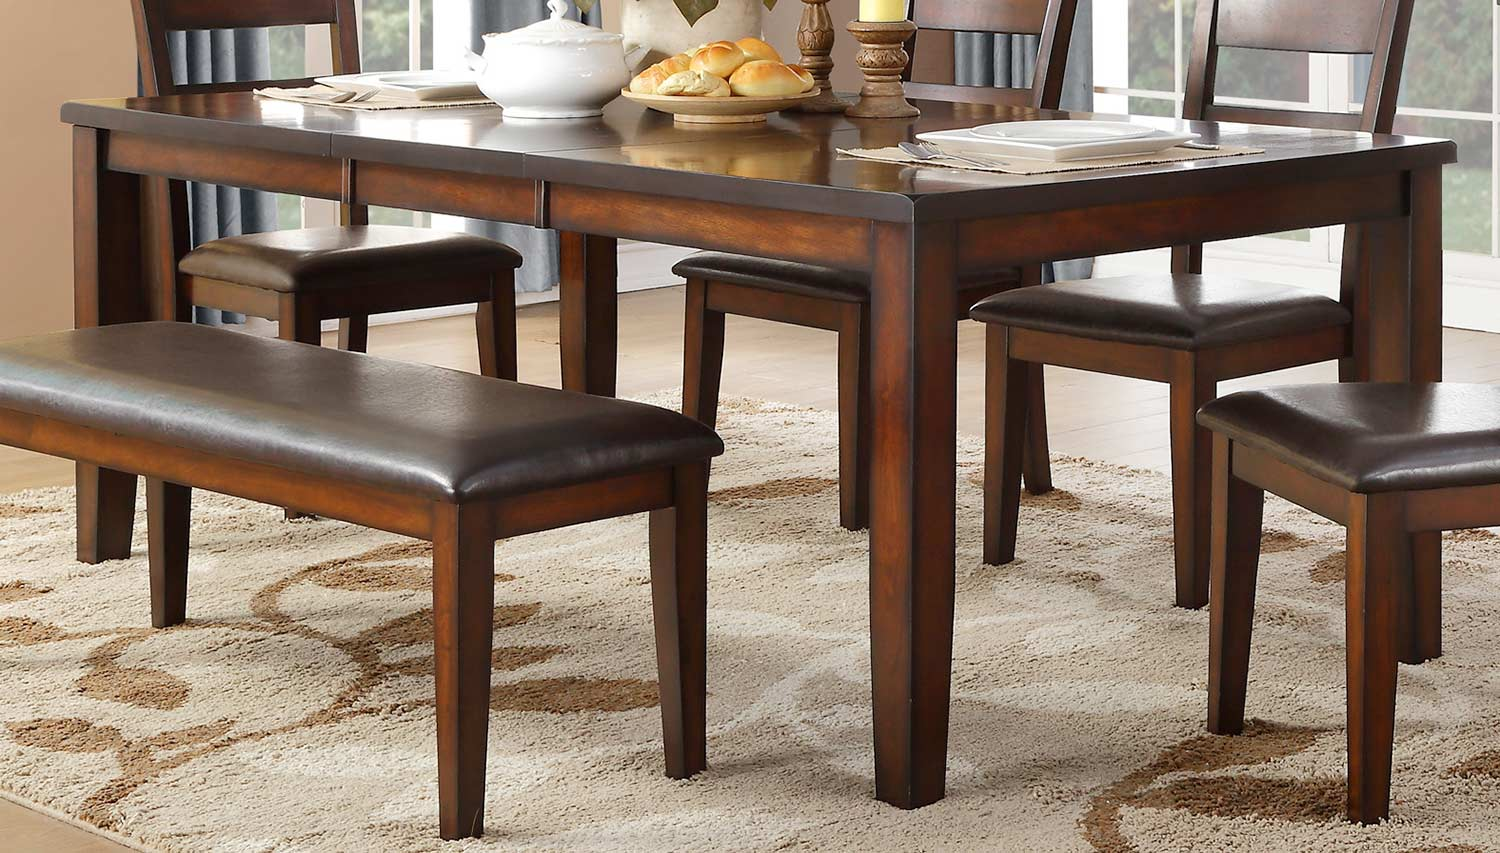 Homelegance Mantello Dining Table - Cherry - Dark Brown Bi-Cast Vinyl